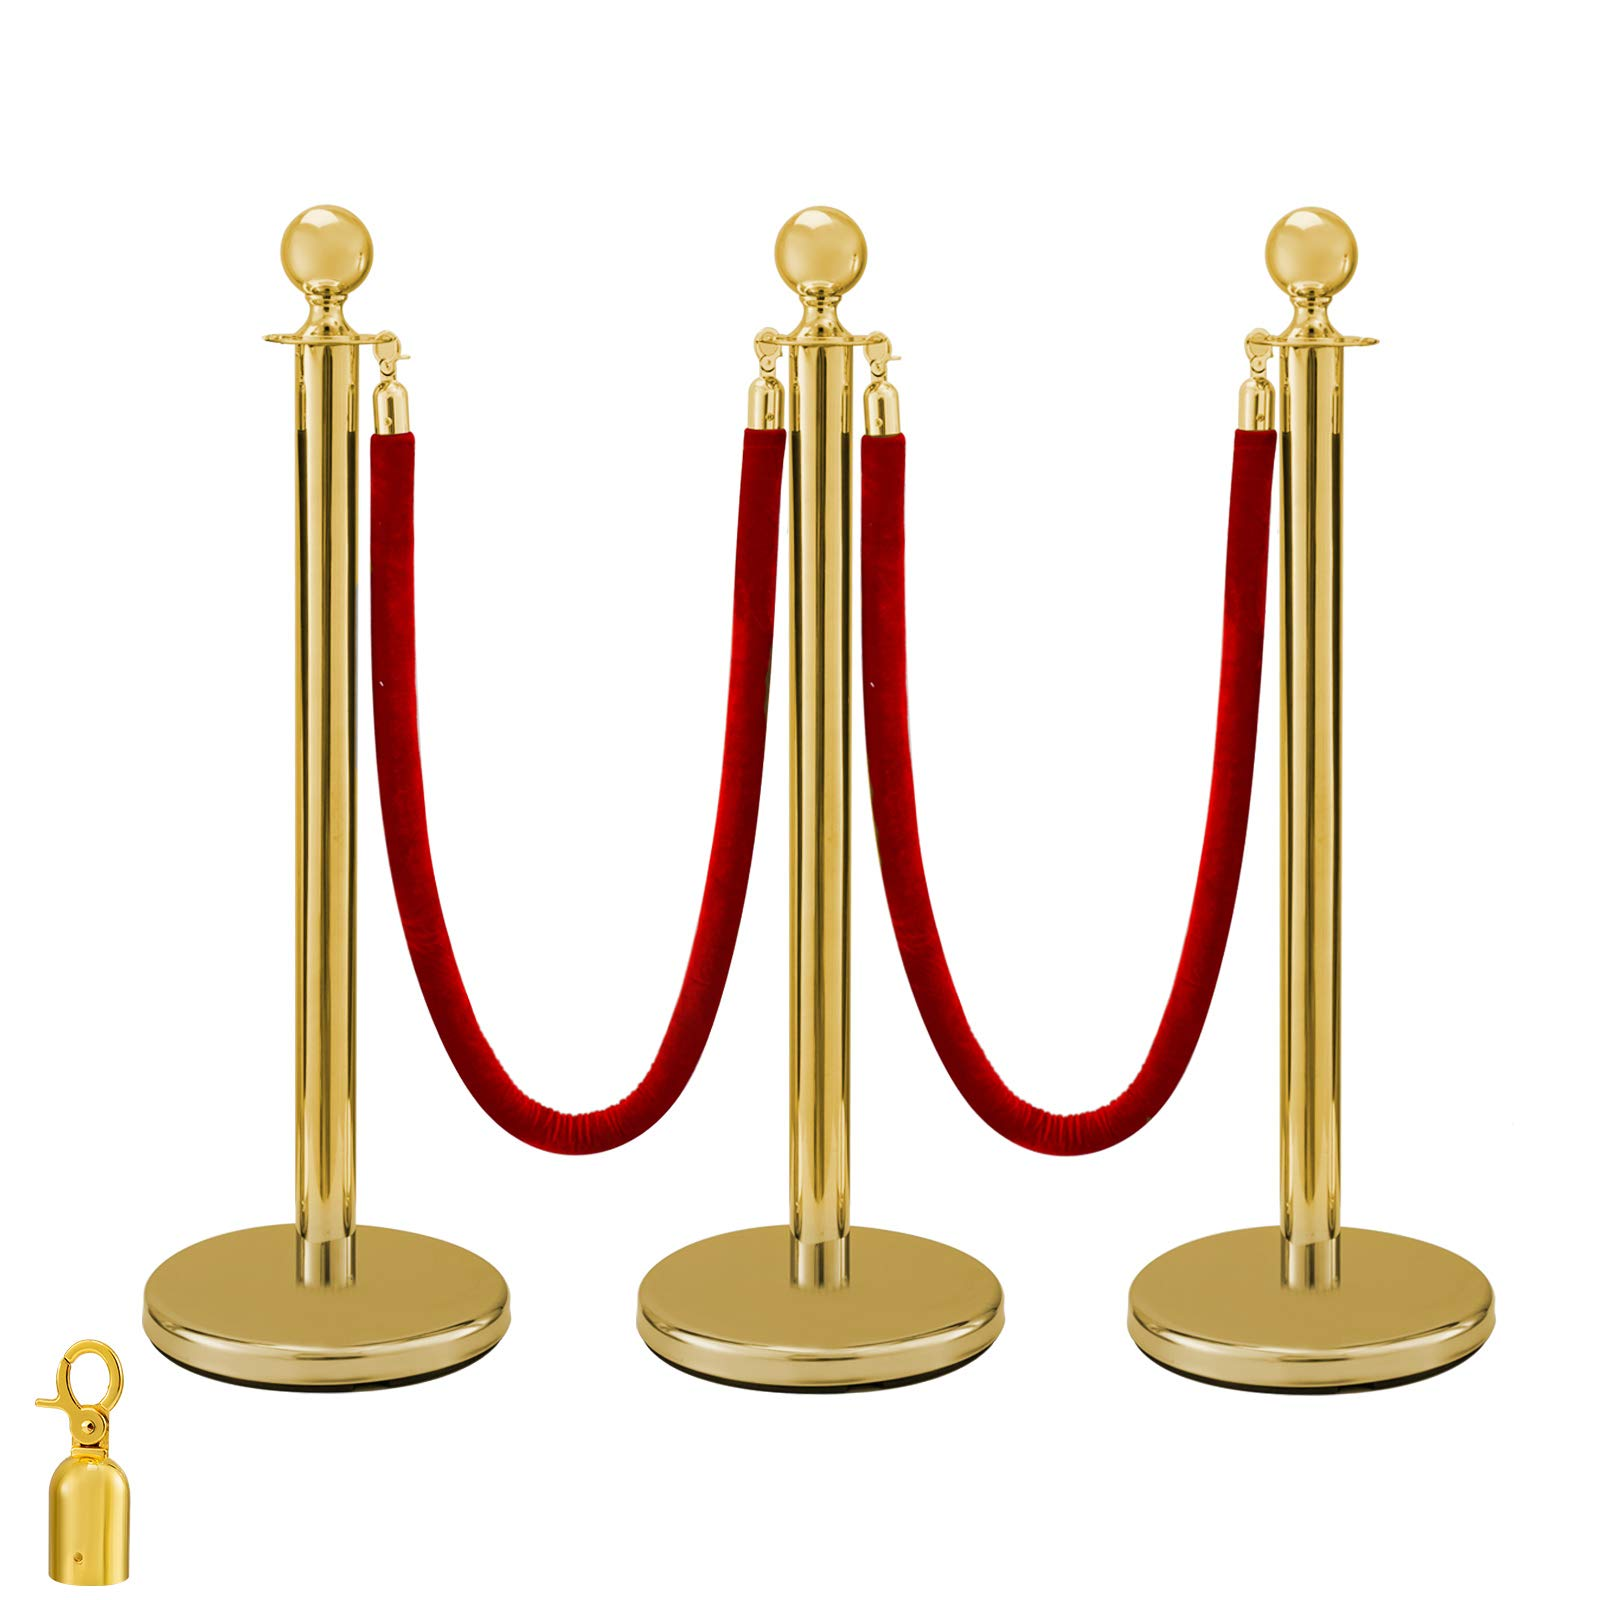 BestEquip 3Pcs Gold Stanchion Posts Queue Red Velvet Rope 38 Inch Crowd Control Barriers Queue Line Rope Barriers for Patrty Supplies